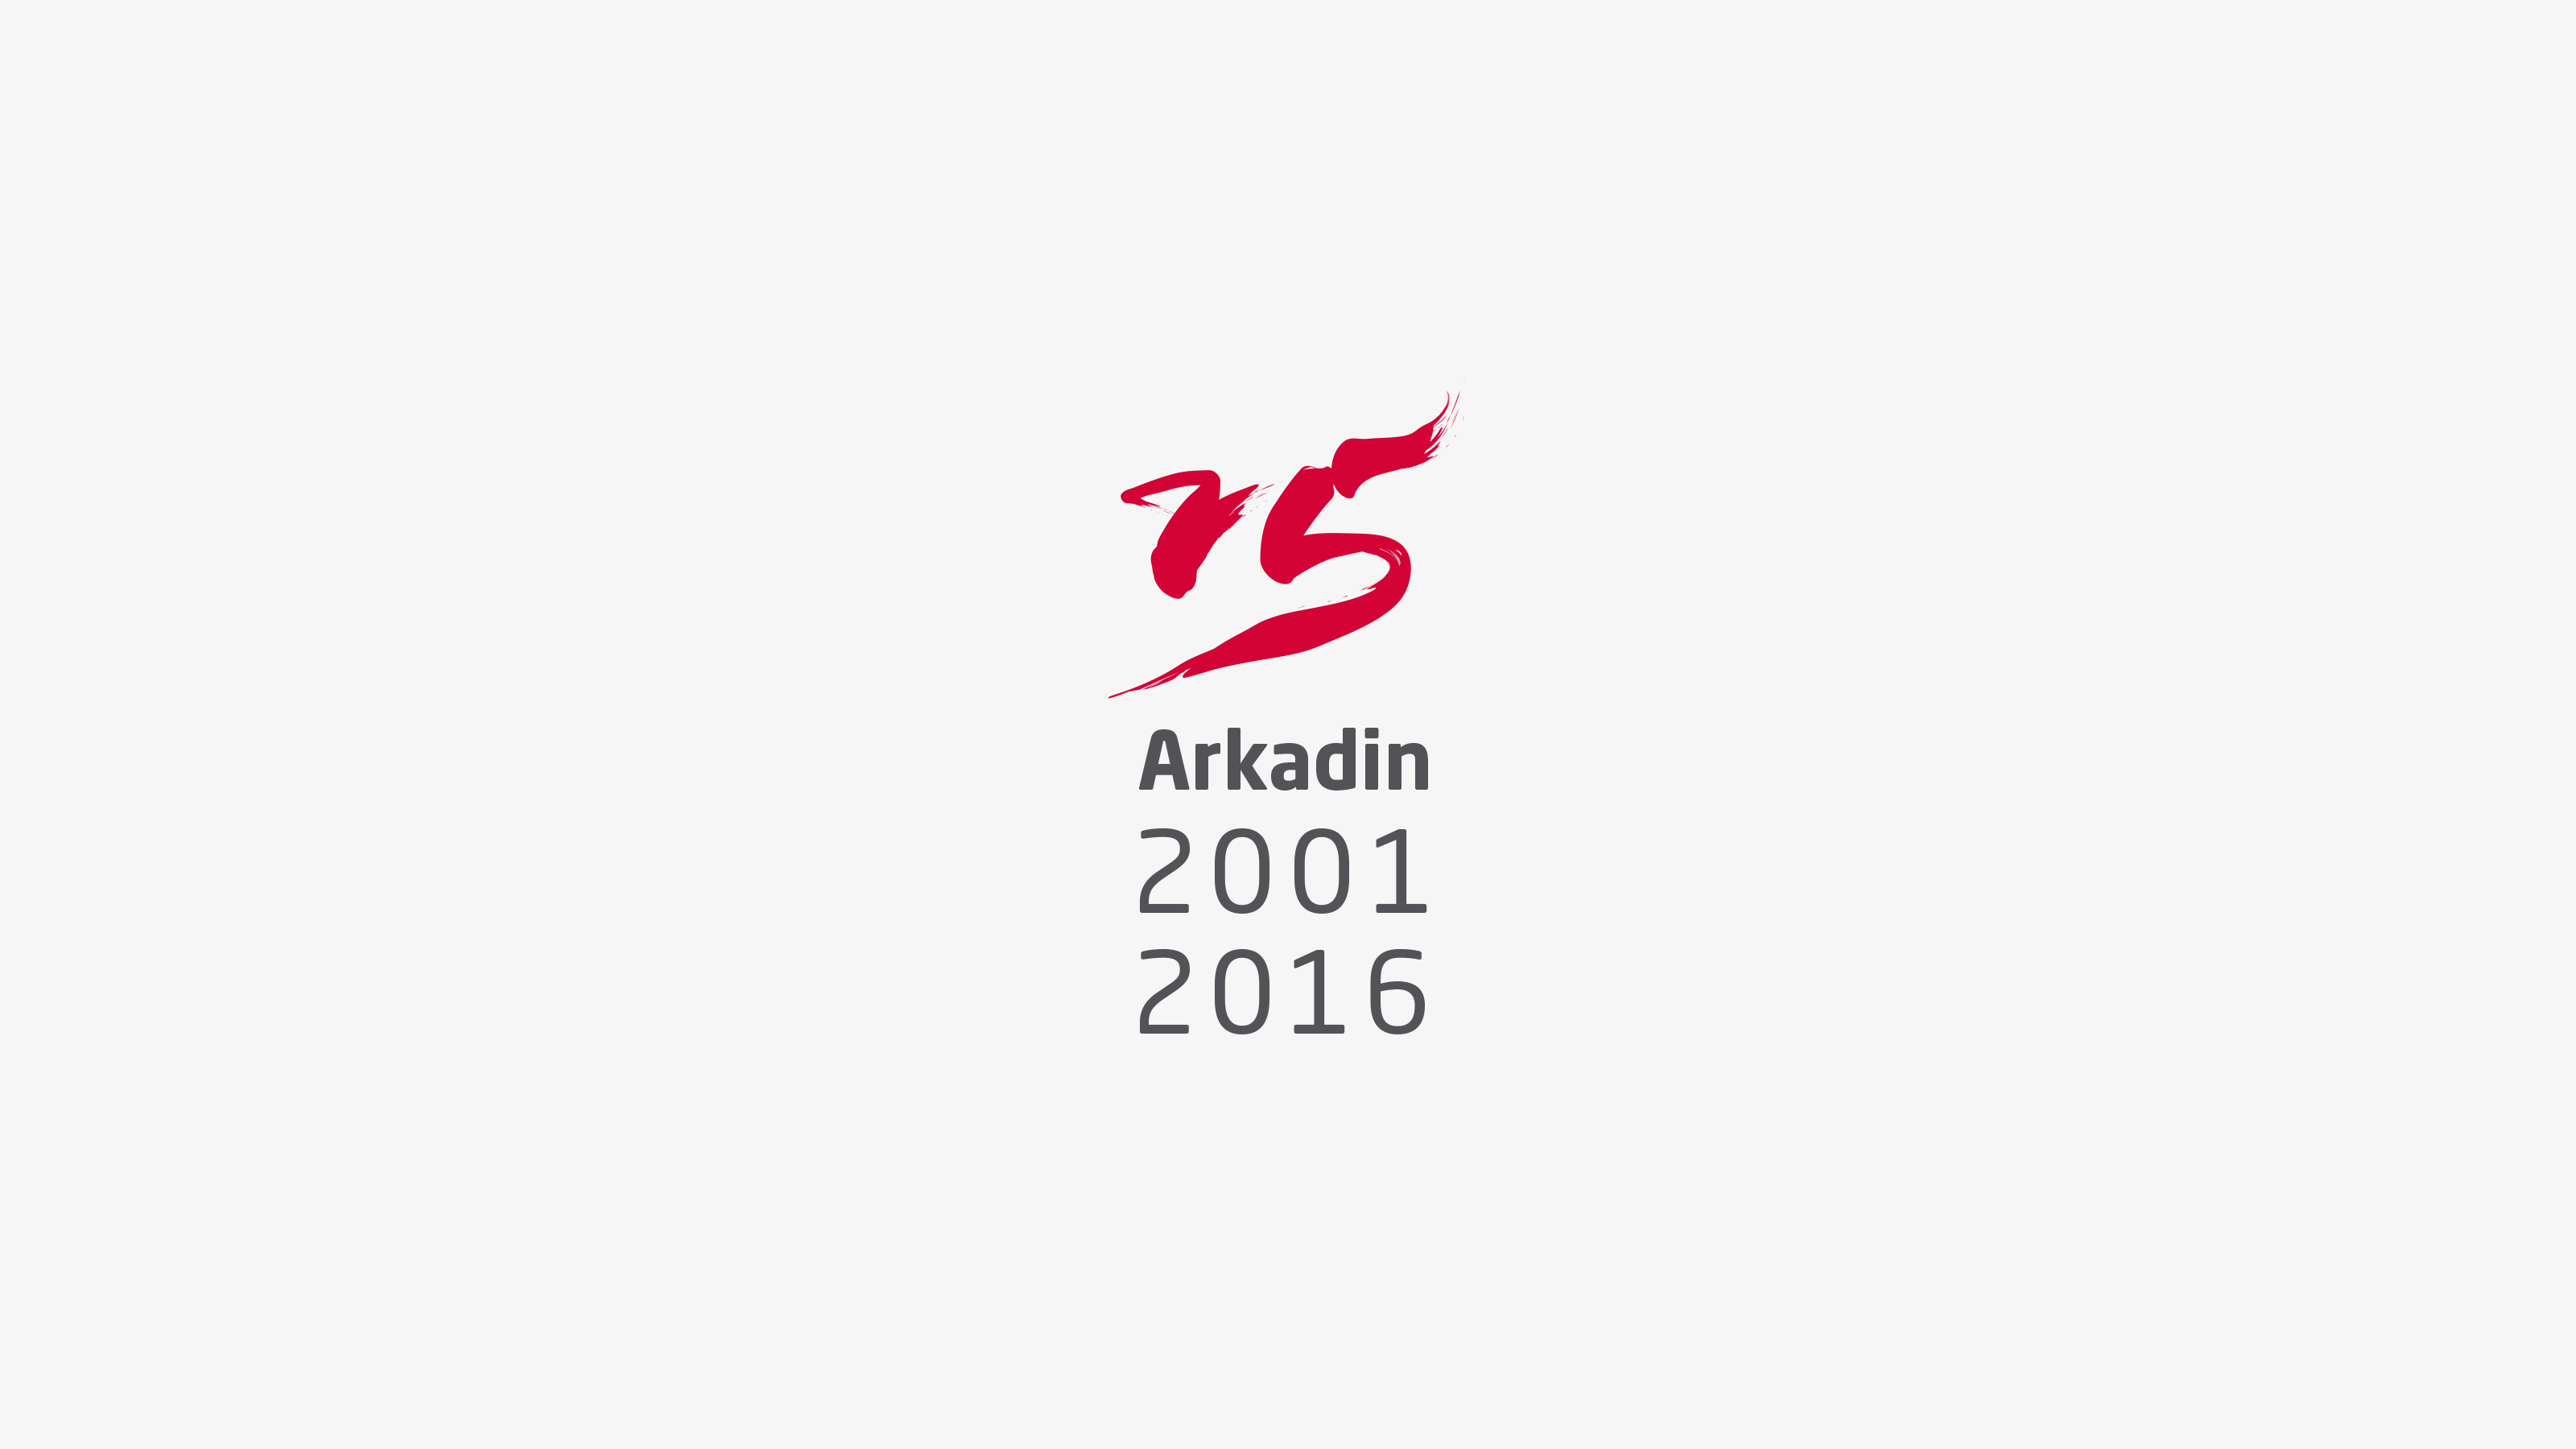 Marketing 15 years logo Arkadin